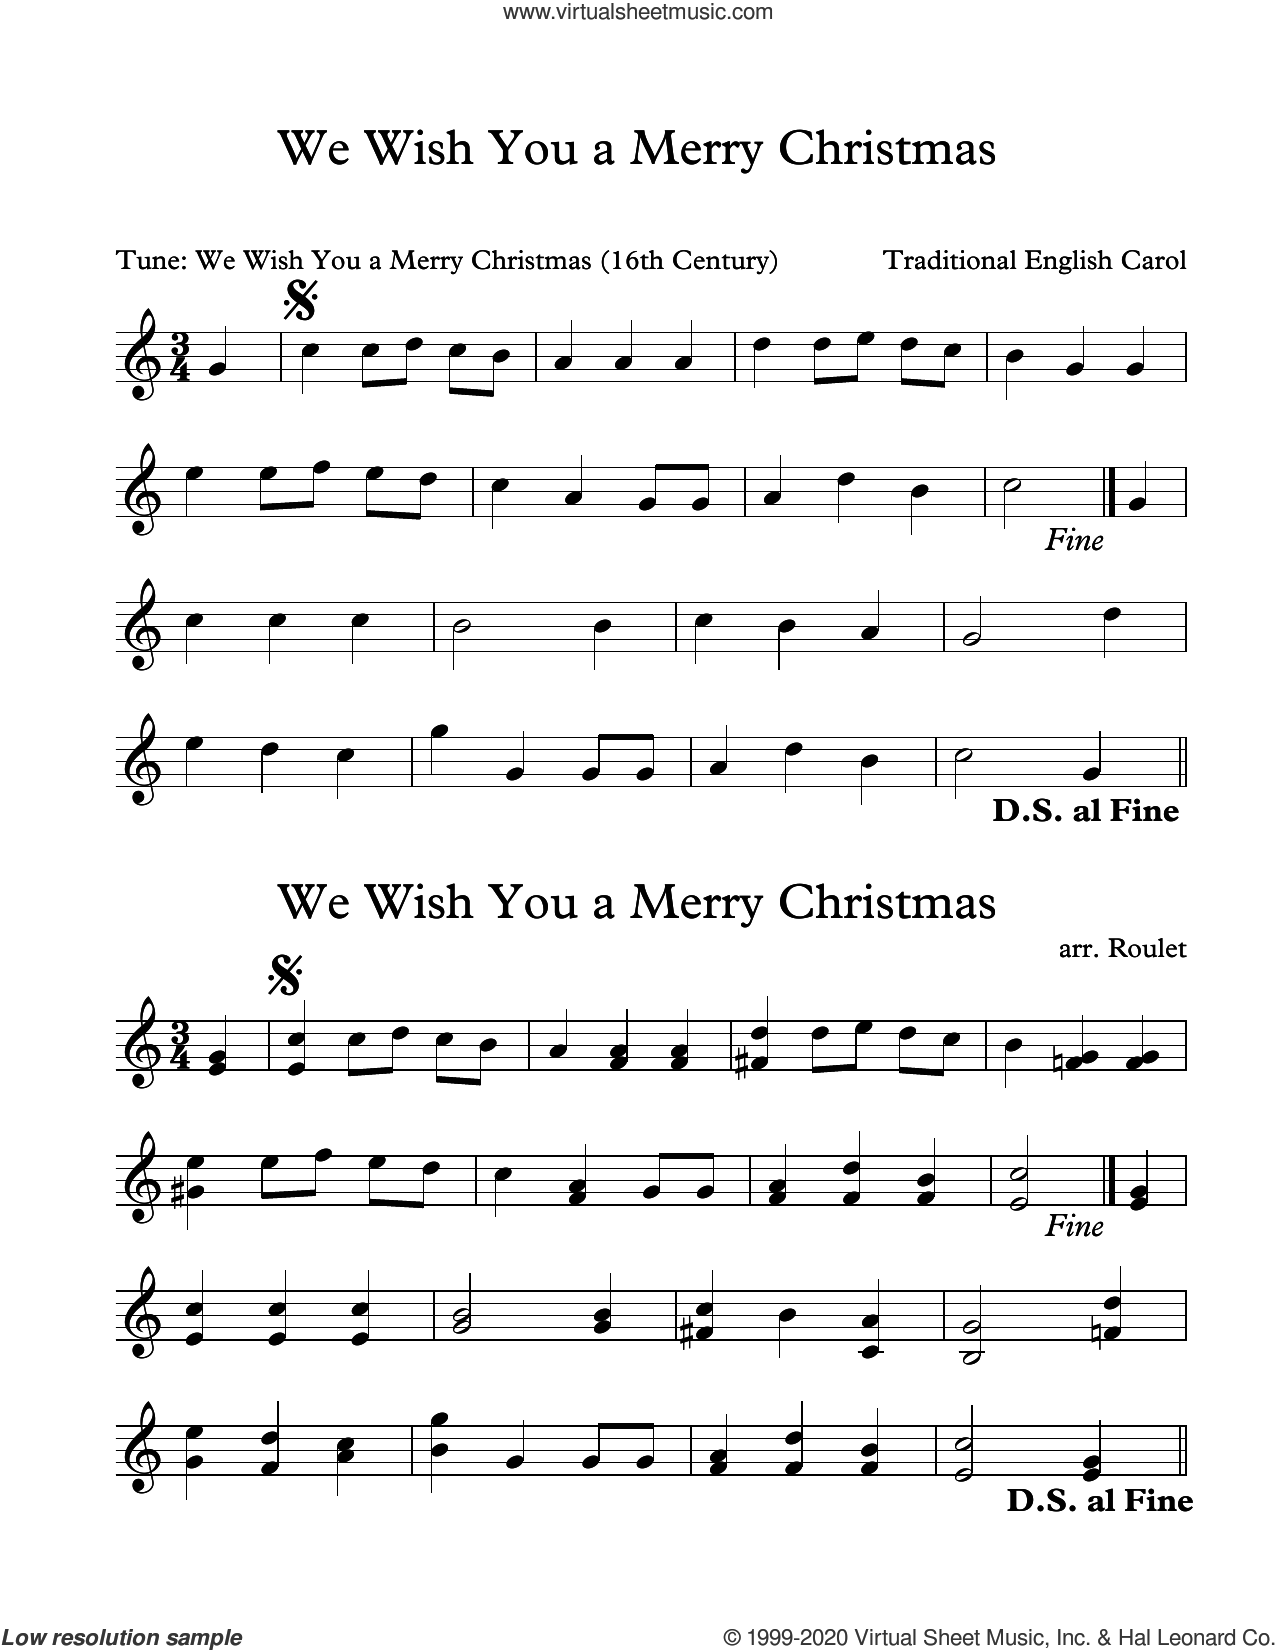 We Wish You A Merry Christmas (arr. Patrick Roulet) sheet music for Marimba Solo  and Patrick Roulet, intermediate skill level